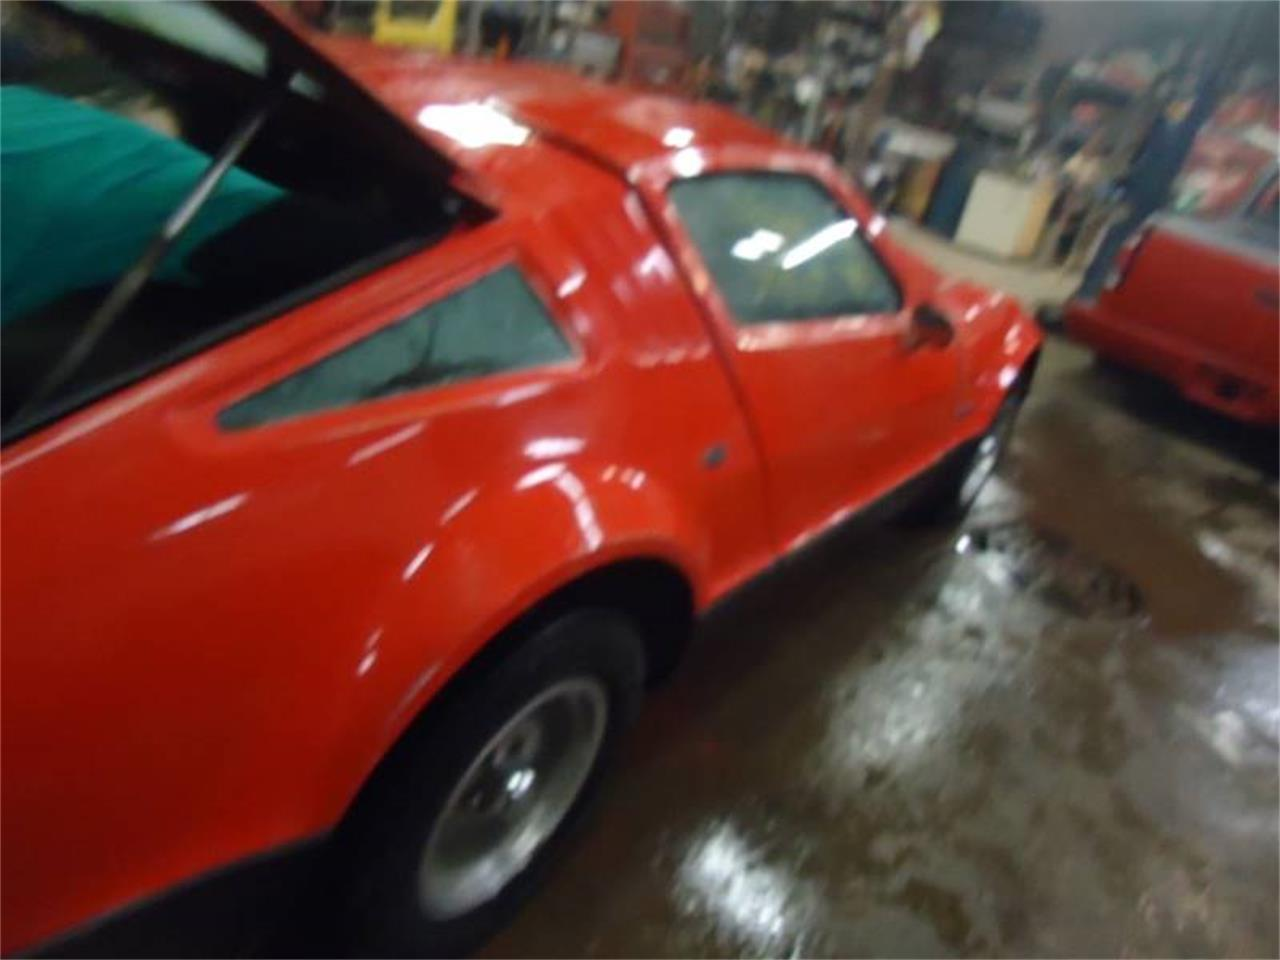 1975 Bricklin SV 1 for sale in Jackson, MI – photo 18